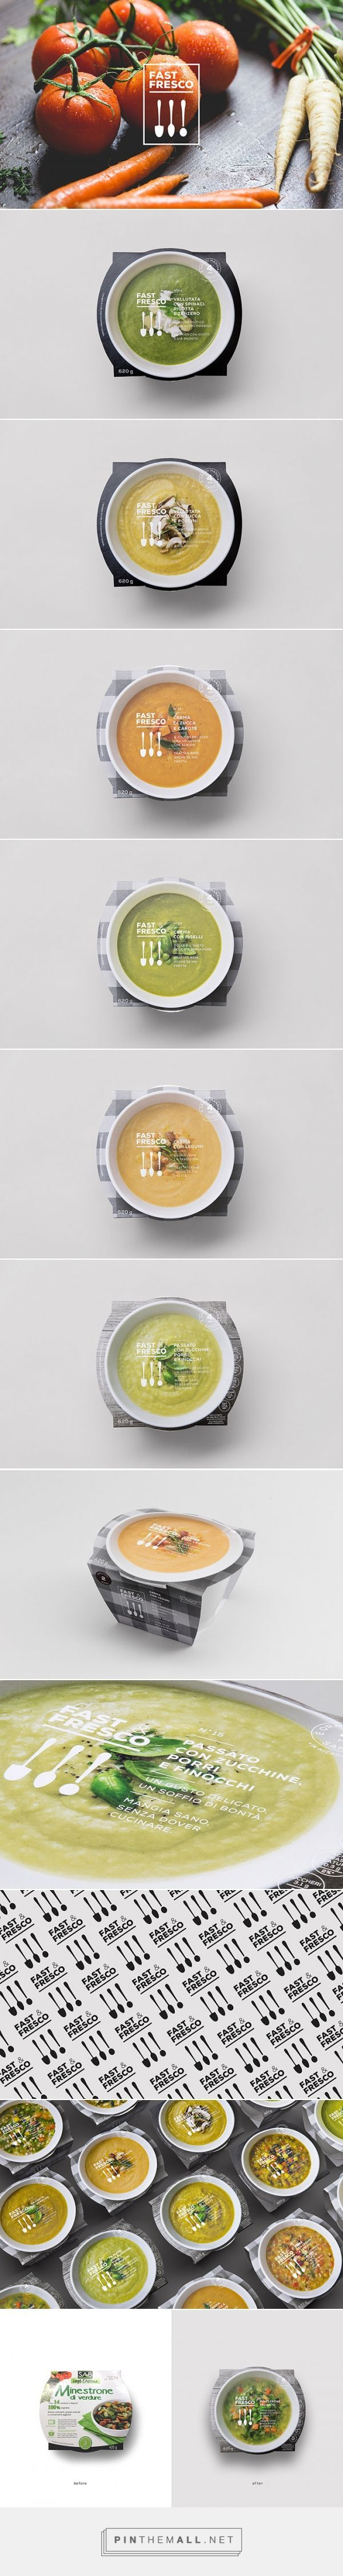 Fast & Fresco prepared dishes by Auge Design. Source: Daily Package Design Inspiration. Pin curated by #SField99 #packaging #design #inspiration #branding #prepared #food #soup